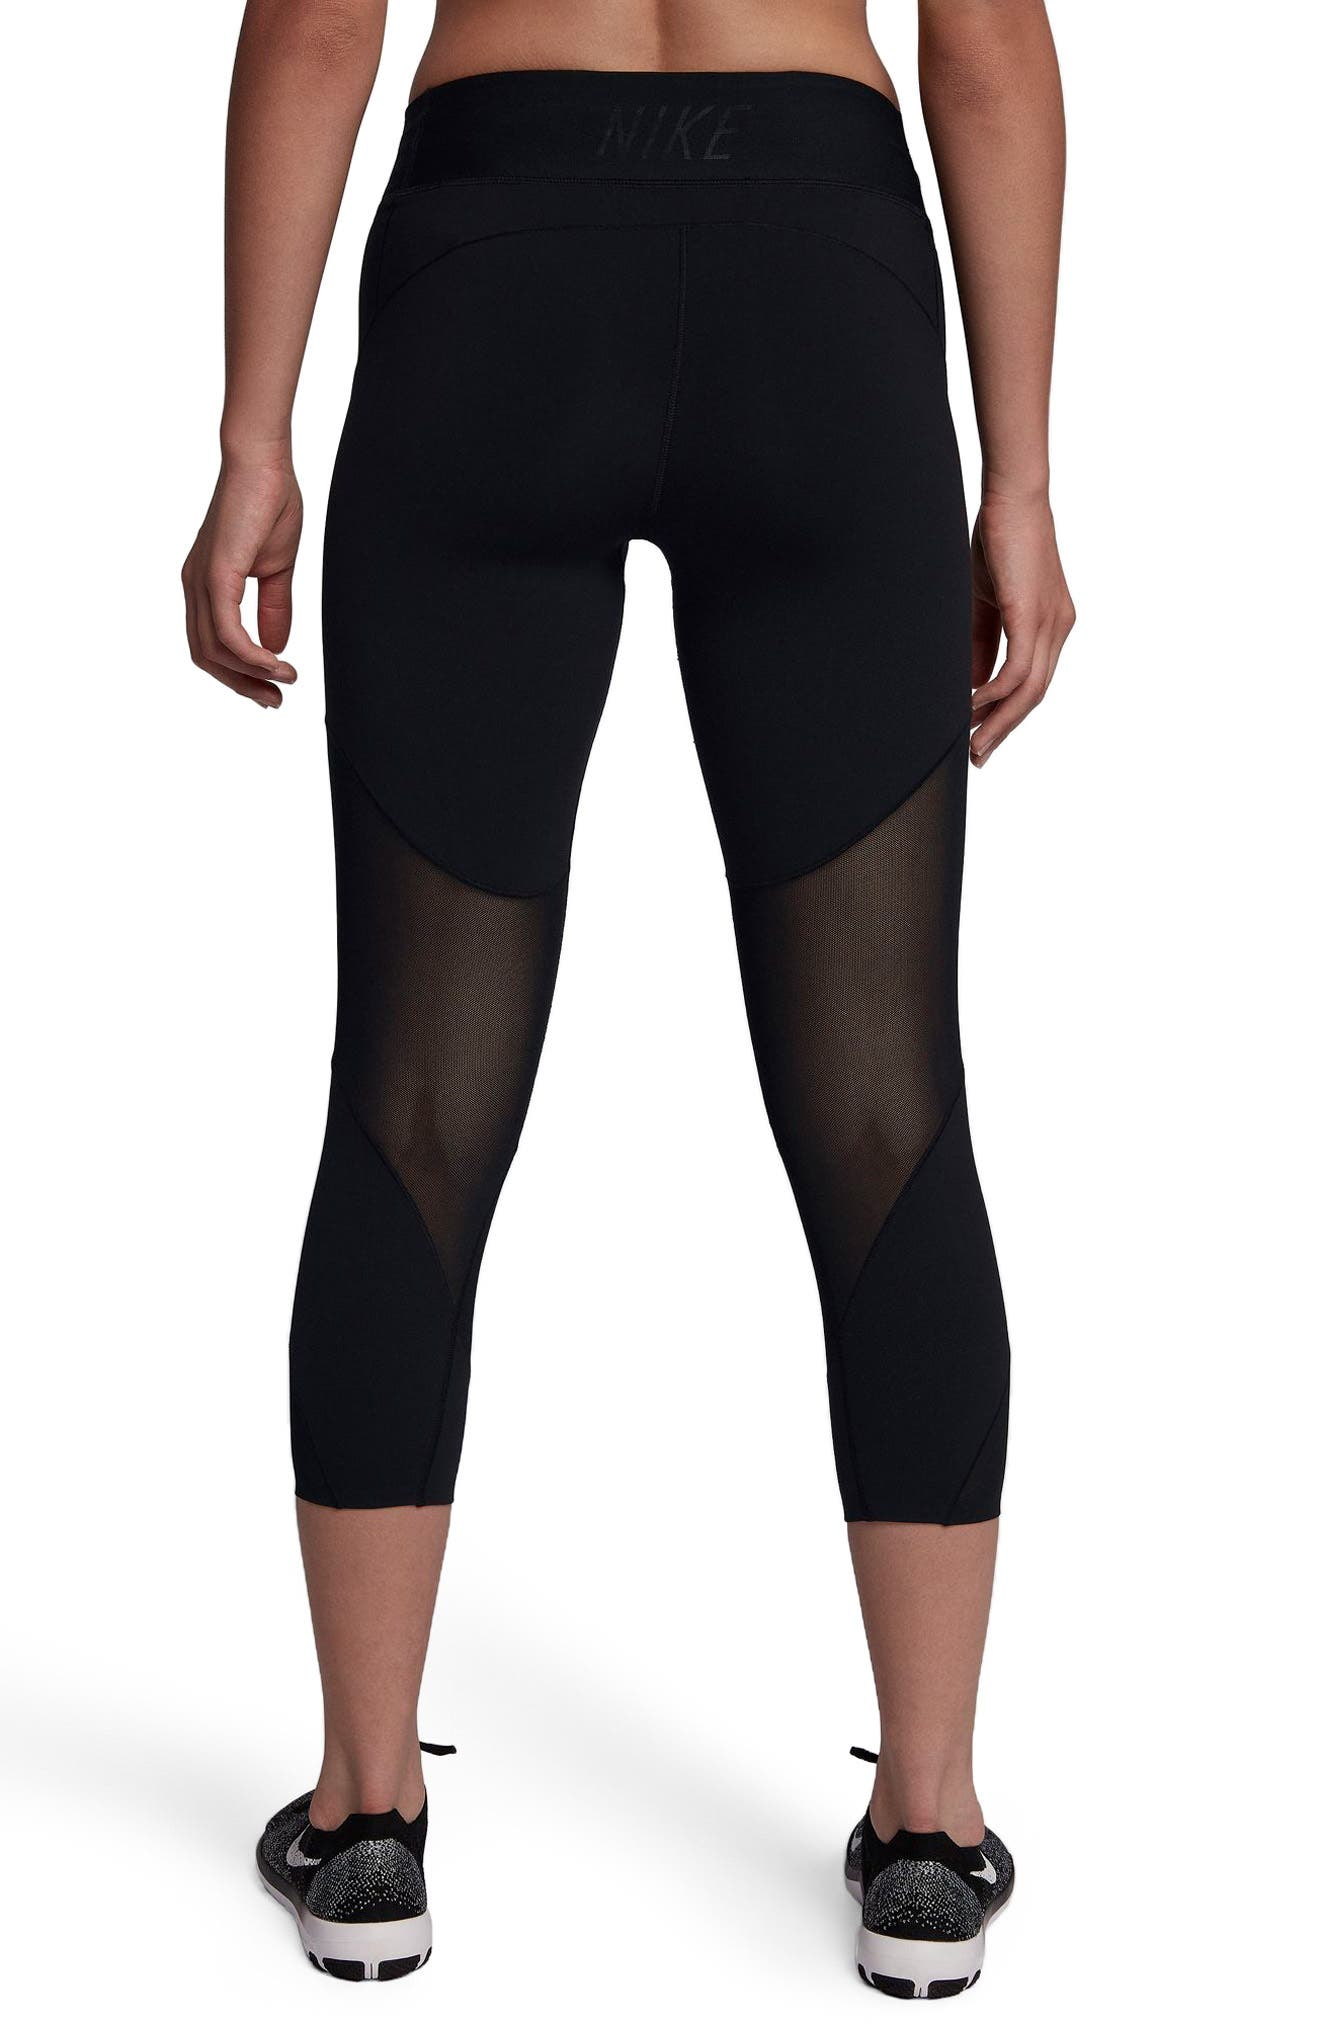 Fly Lux Crop Leggings,                             Alternate thumbnail 2, color,                             Black/ Clear